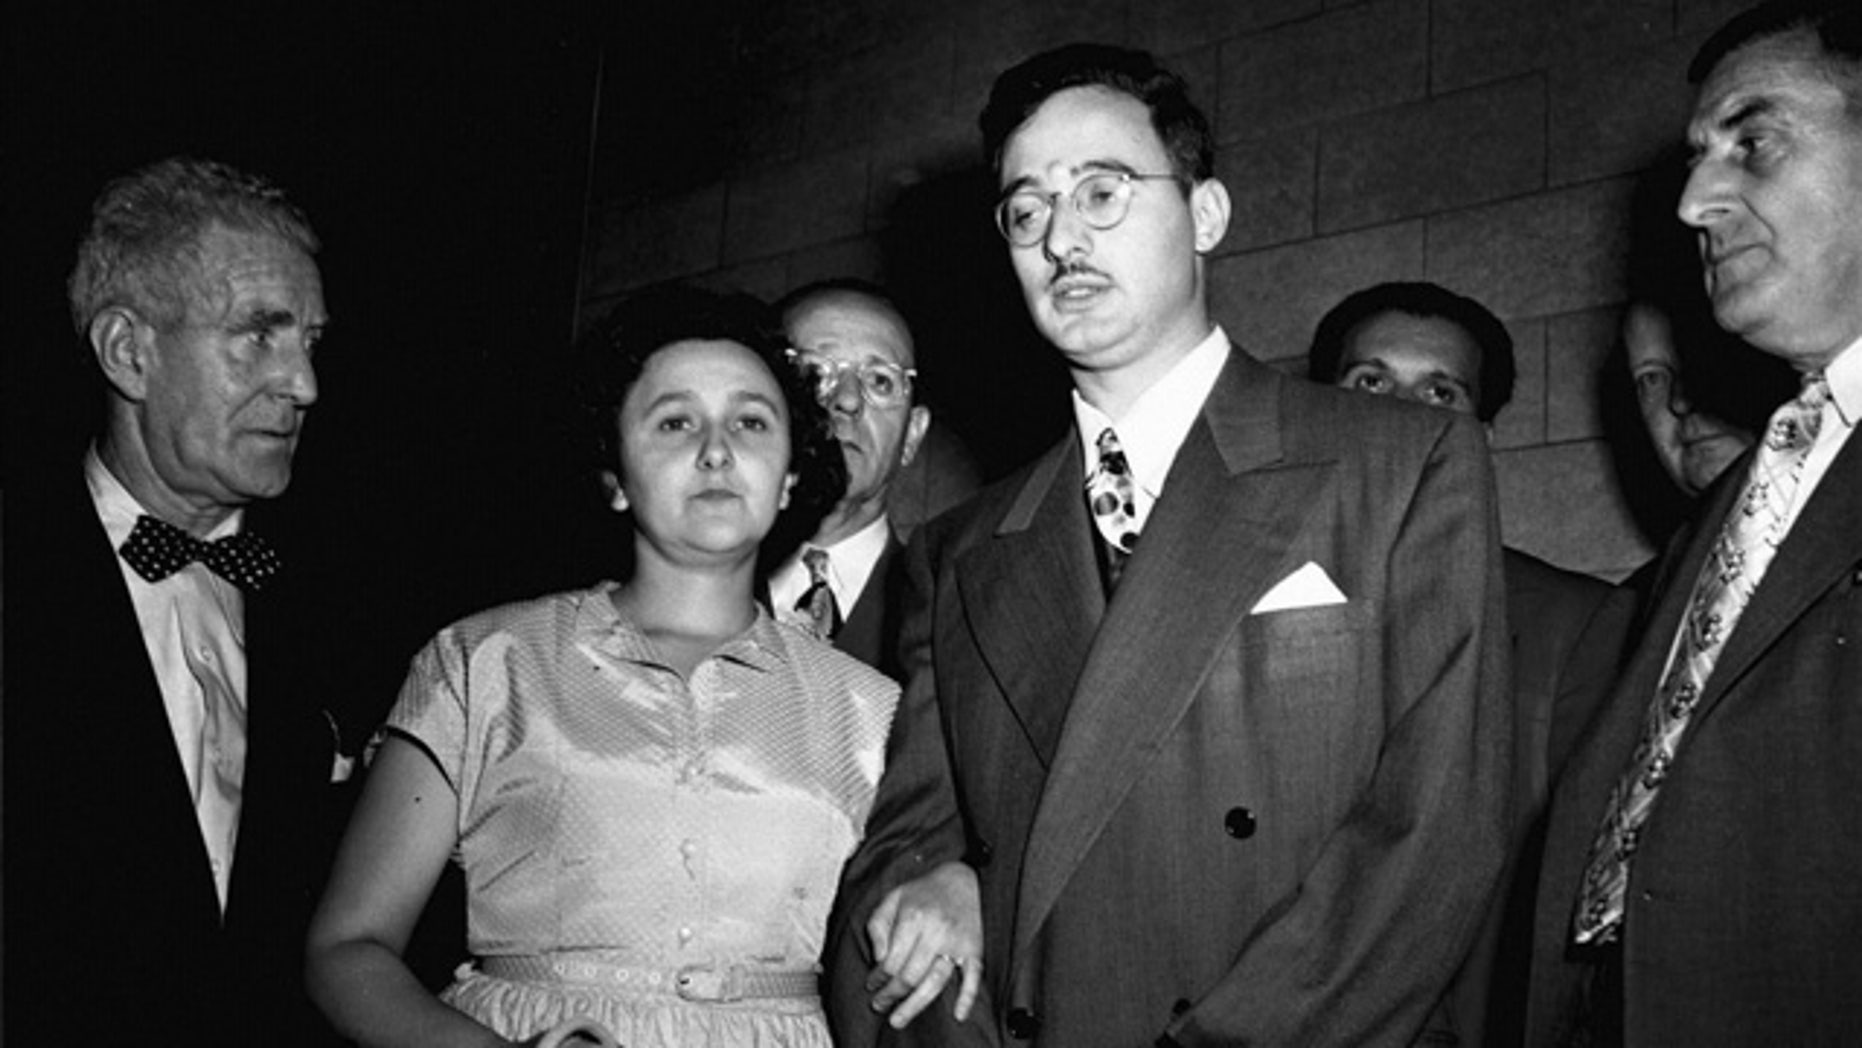 In this 1951 file photo, Ethel and Julius Rosenberg are shown during their trial for espionage in New York. (AP/File)